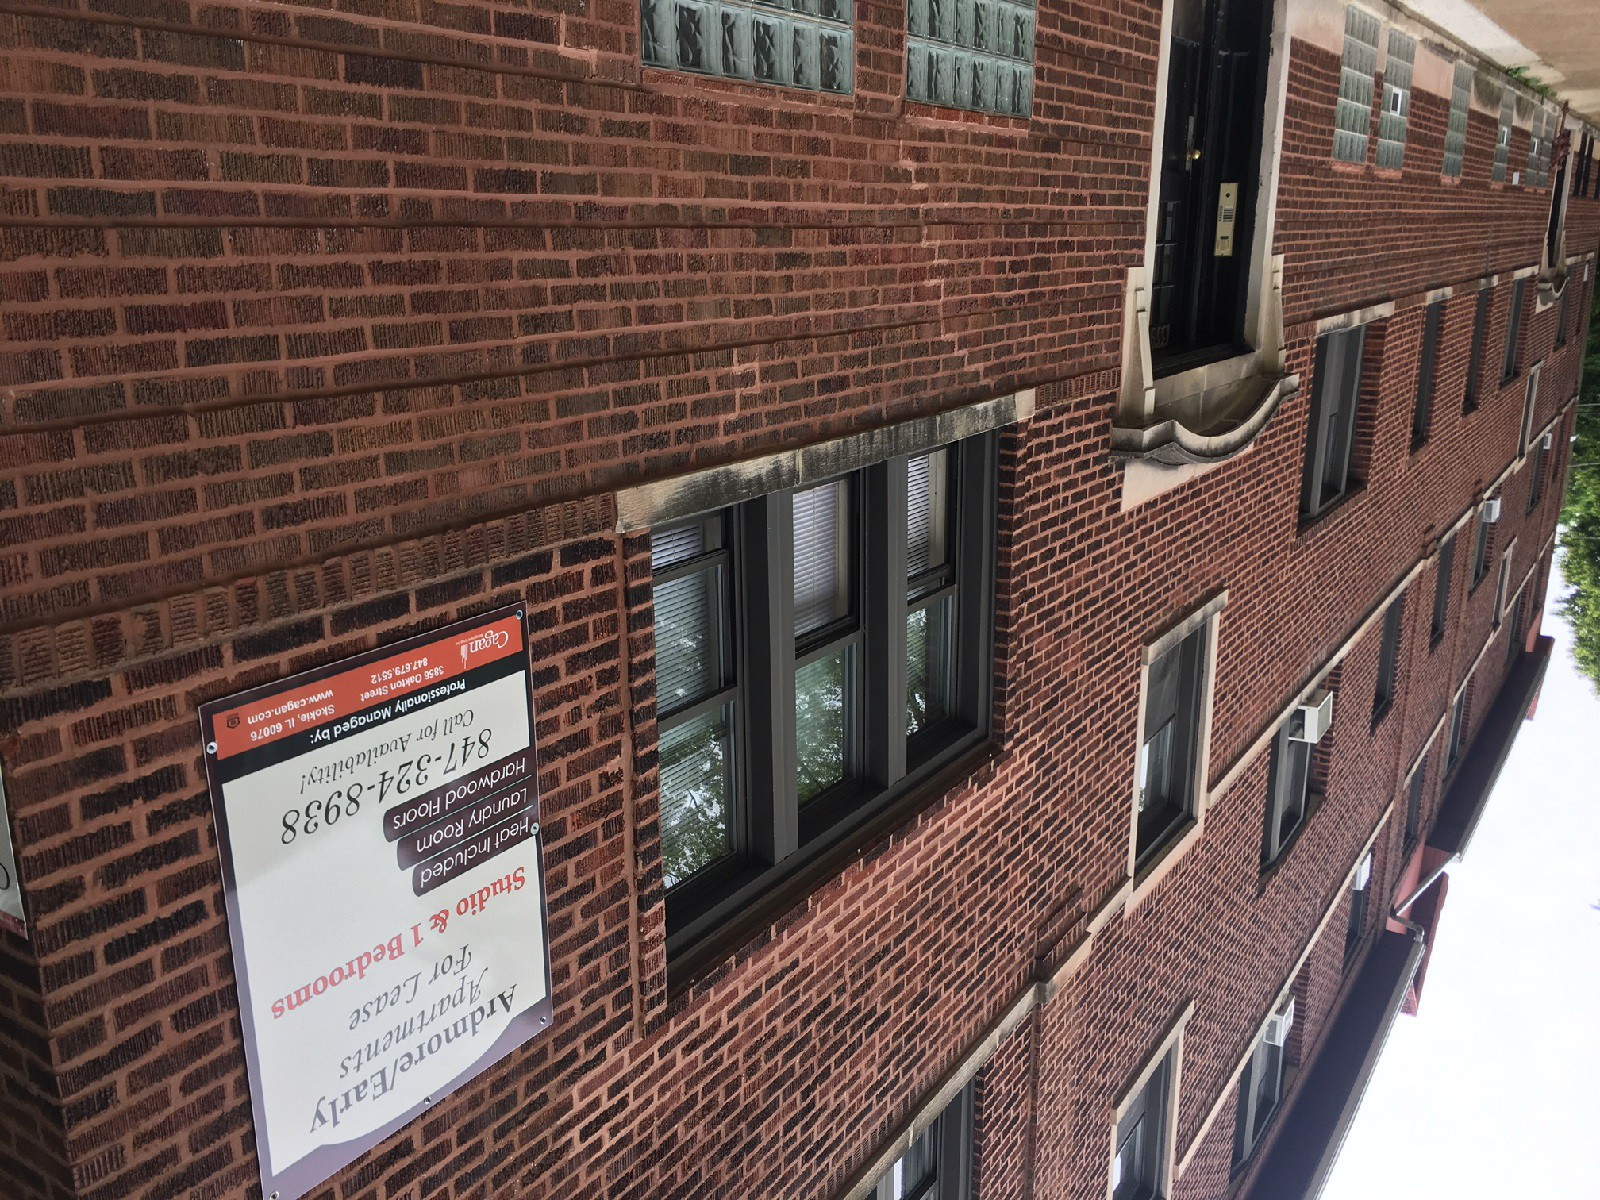 1352-58 W. Early/1333-41 Ardmore rental